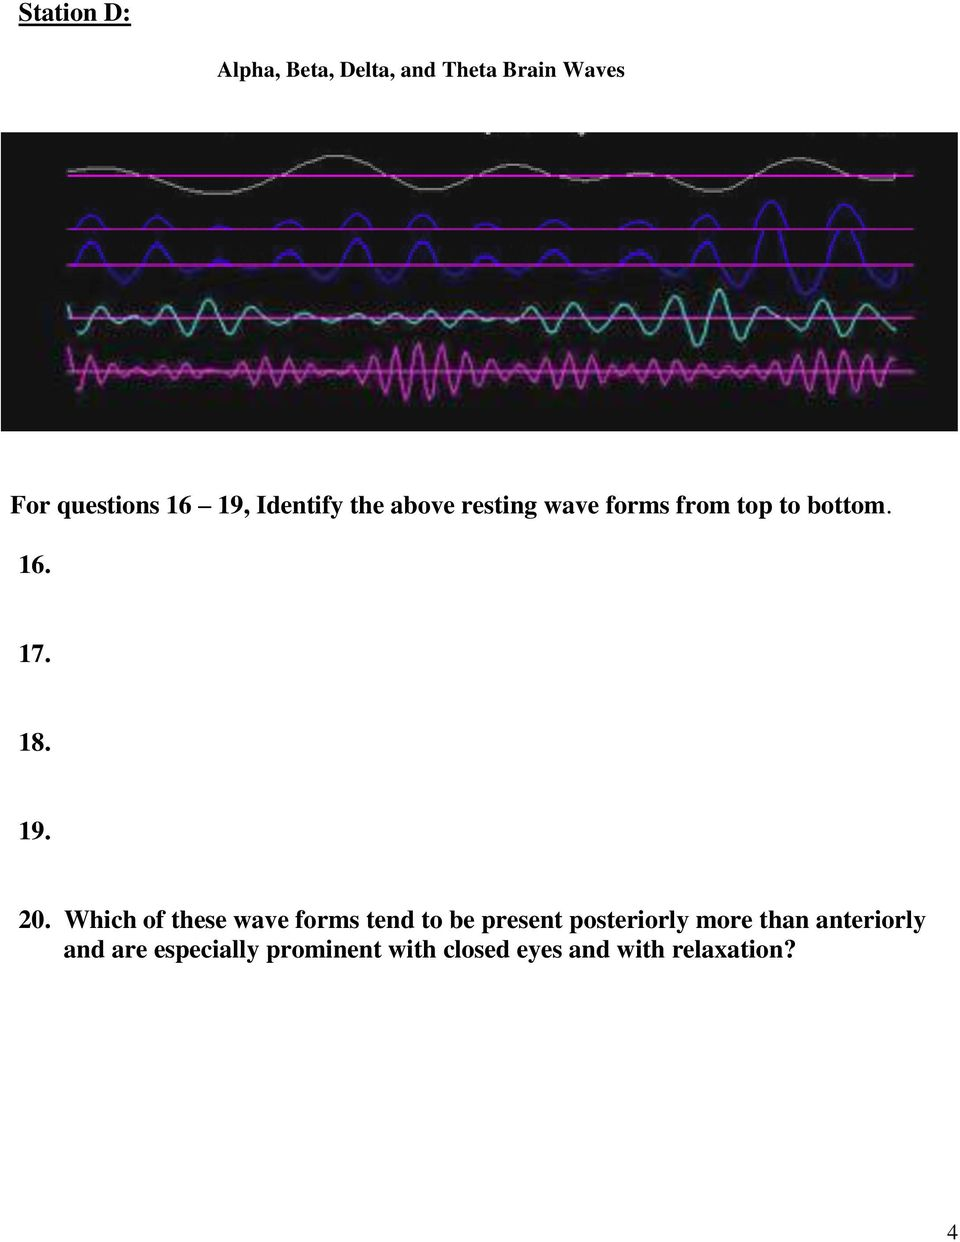 20. Which of these wave forms tend to be present posteriorly more than